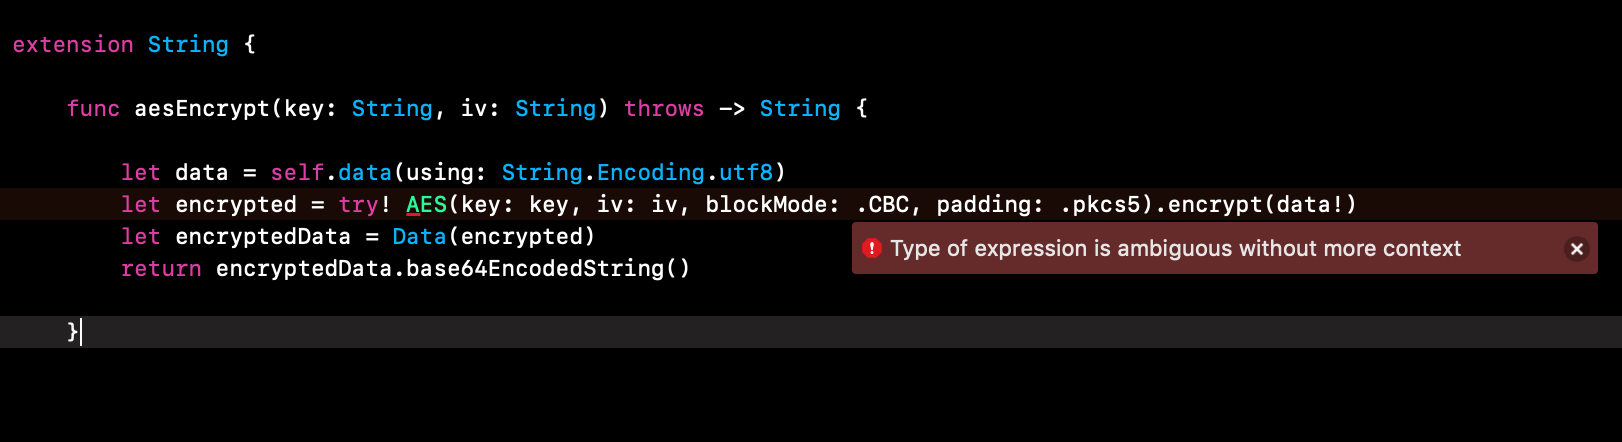 Can anyone convert to Swift 4 this extension  Unable to